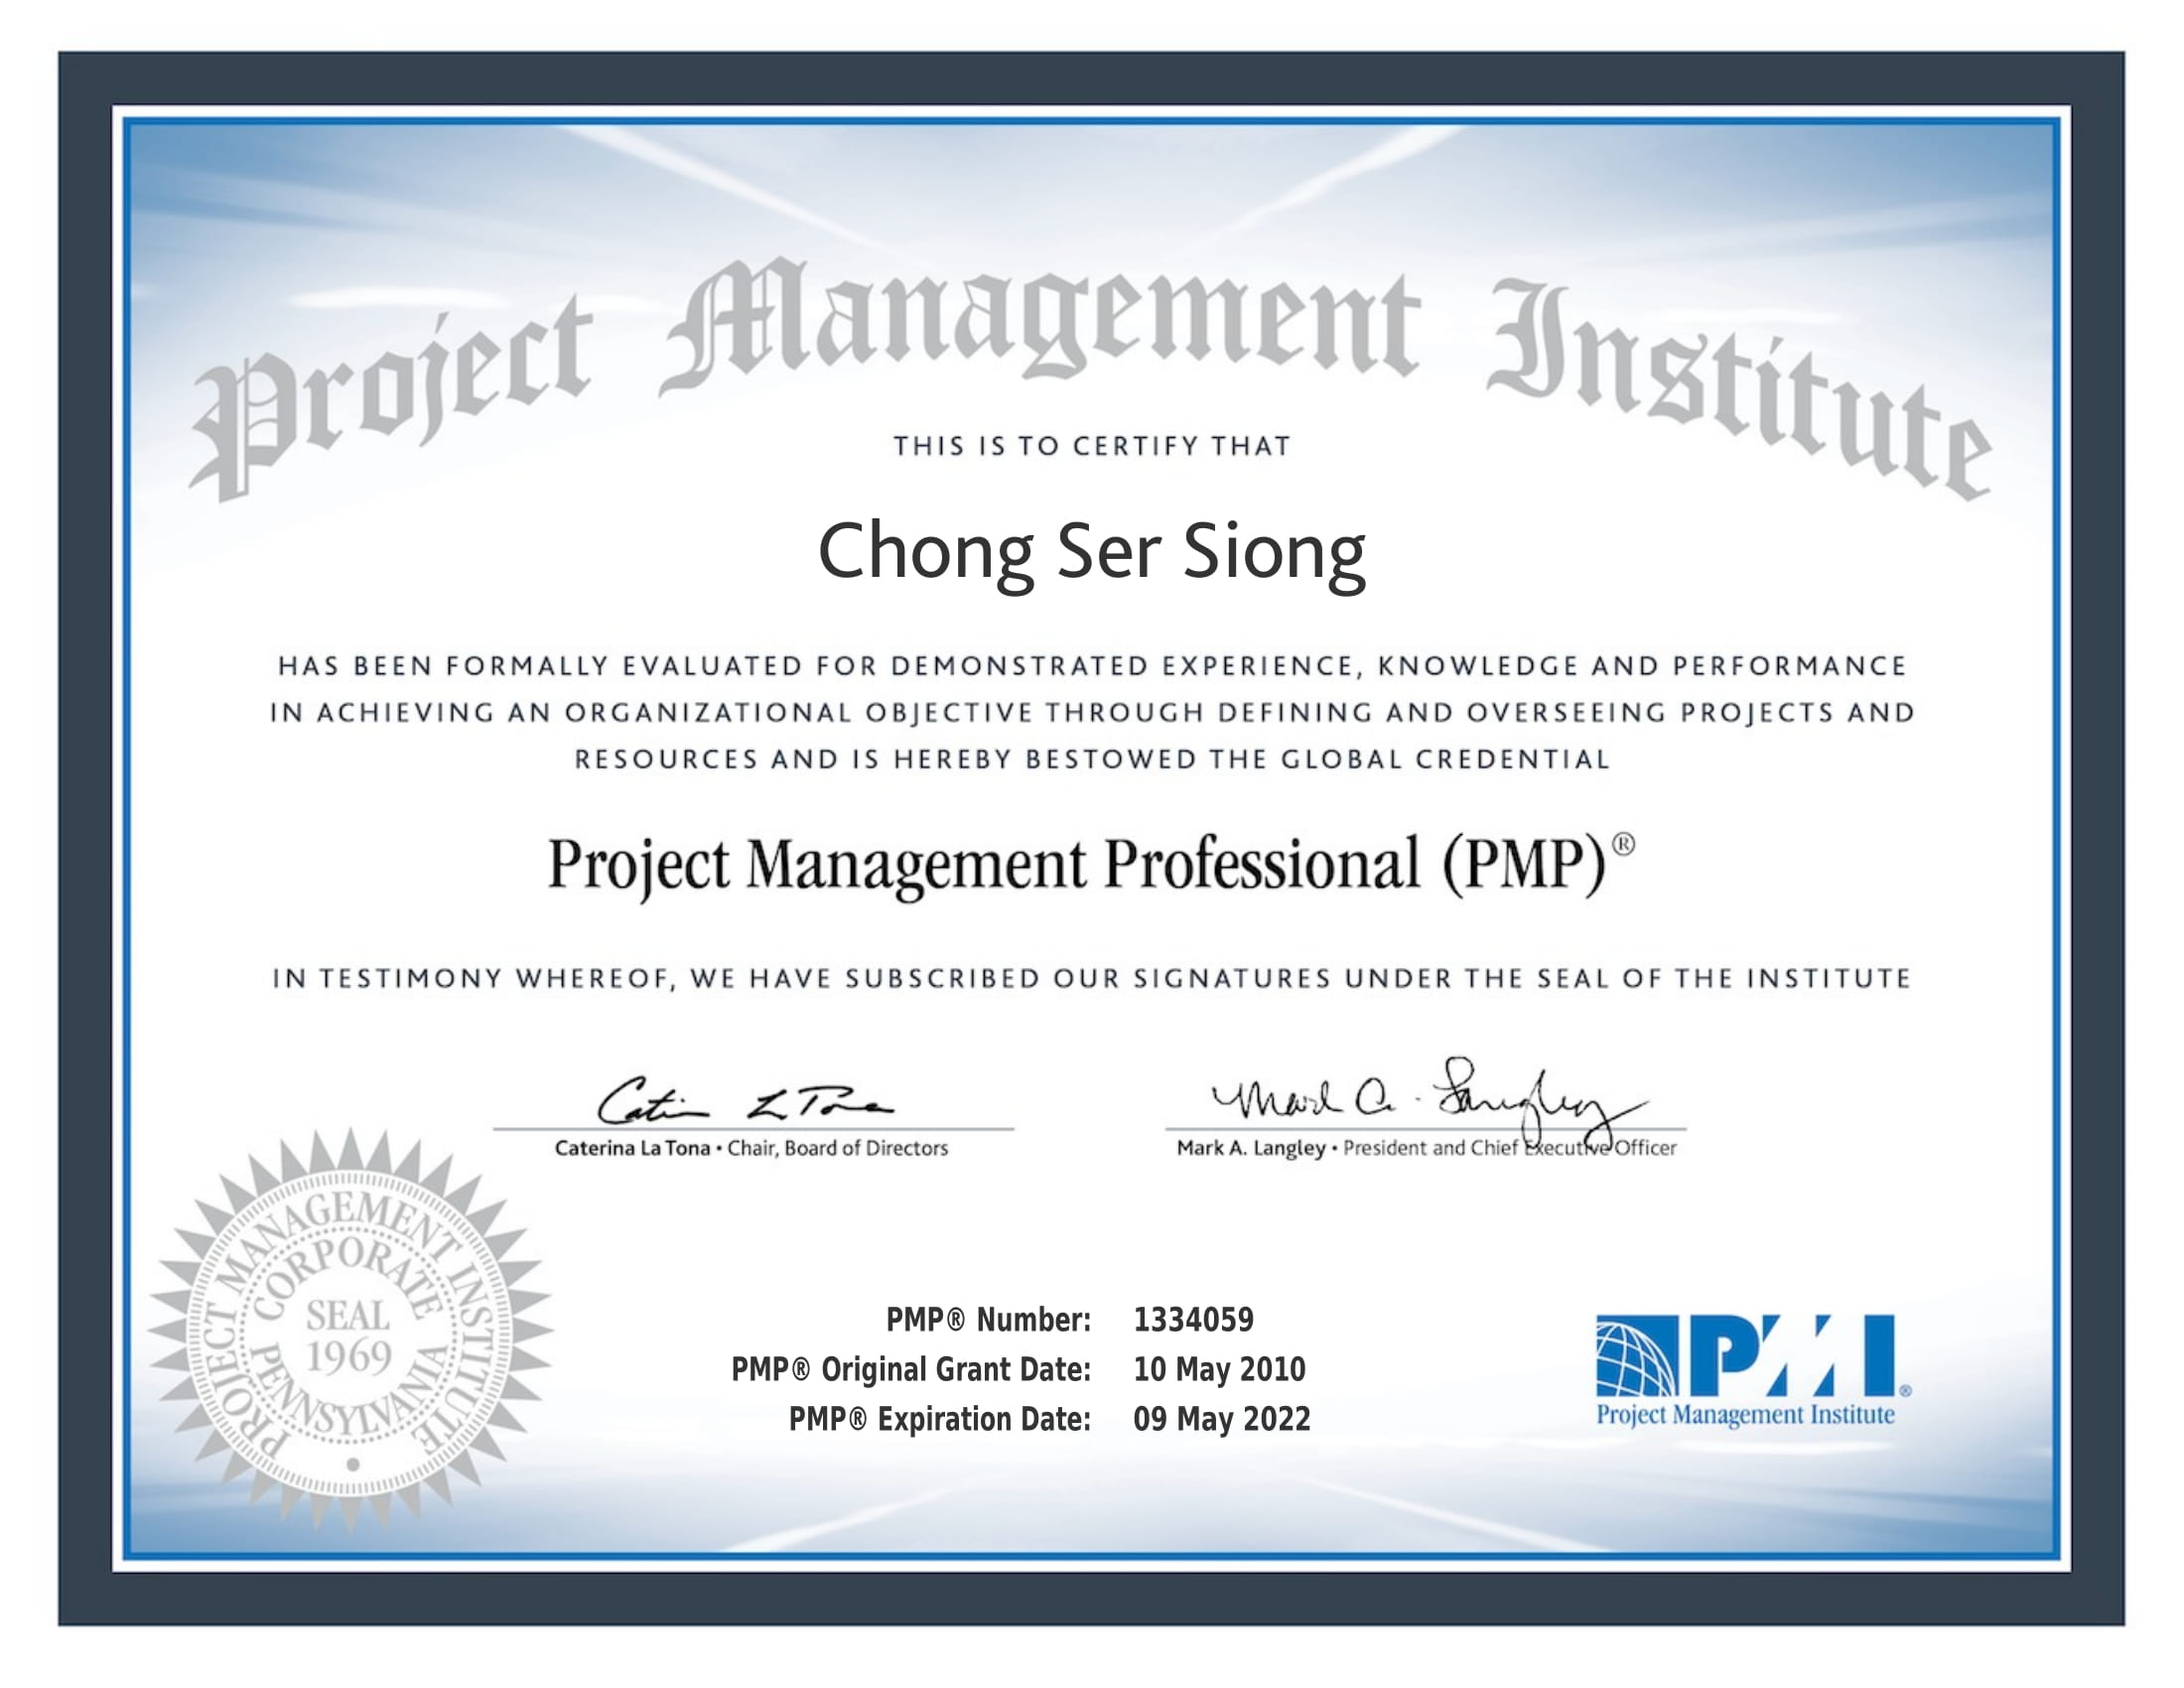 Project Management Professional certificate_1334059_04Nov2018-1